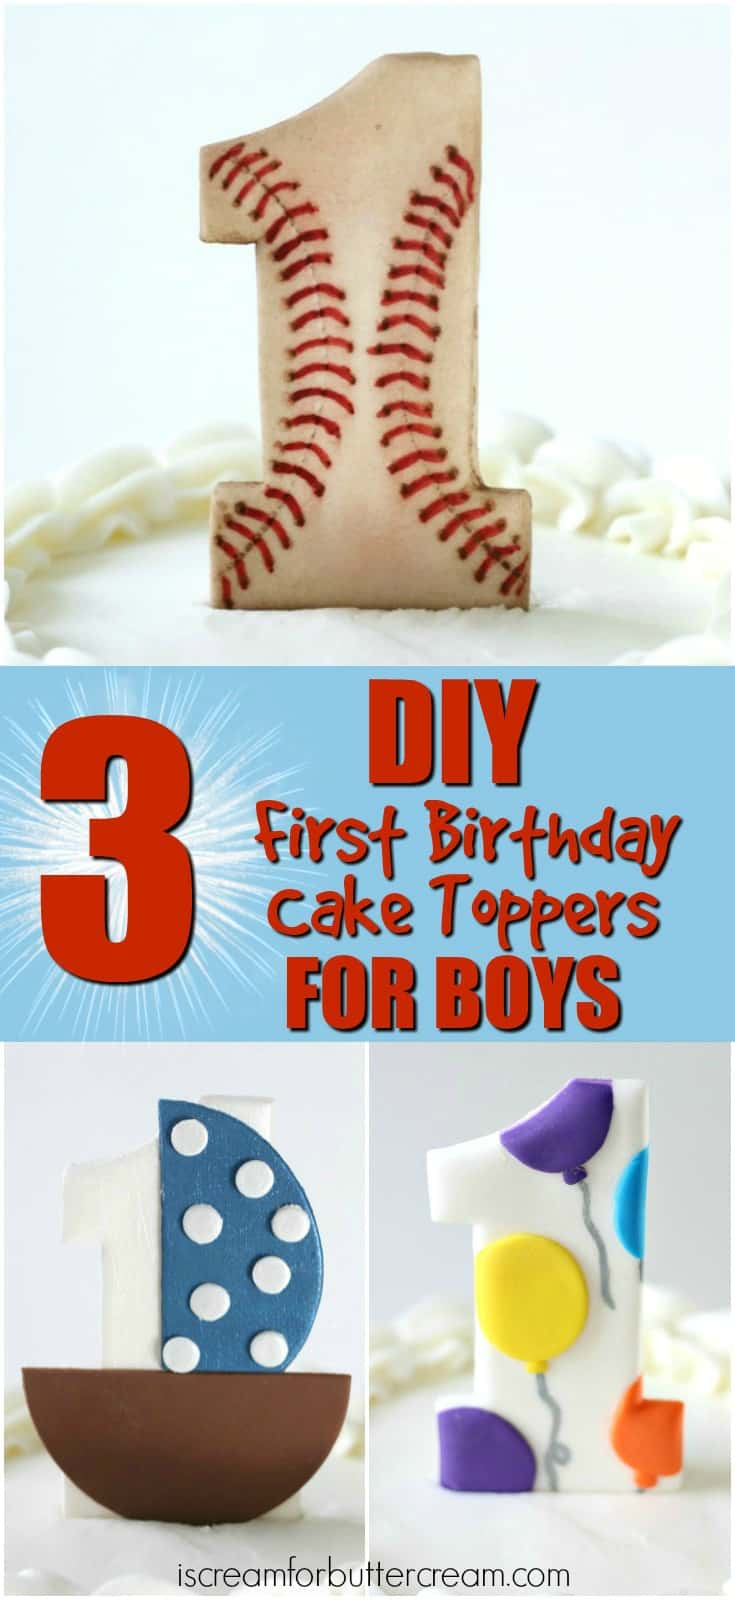 3 Cake Toppers for Boys